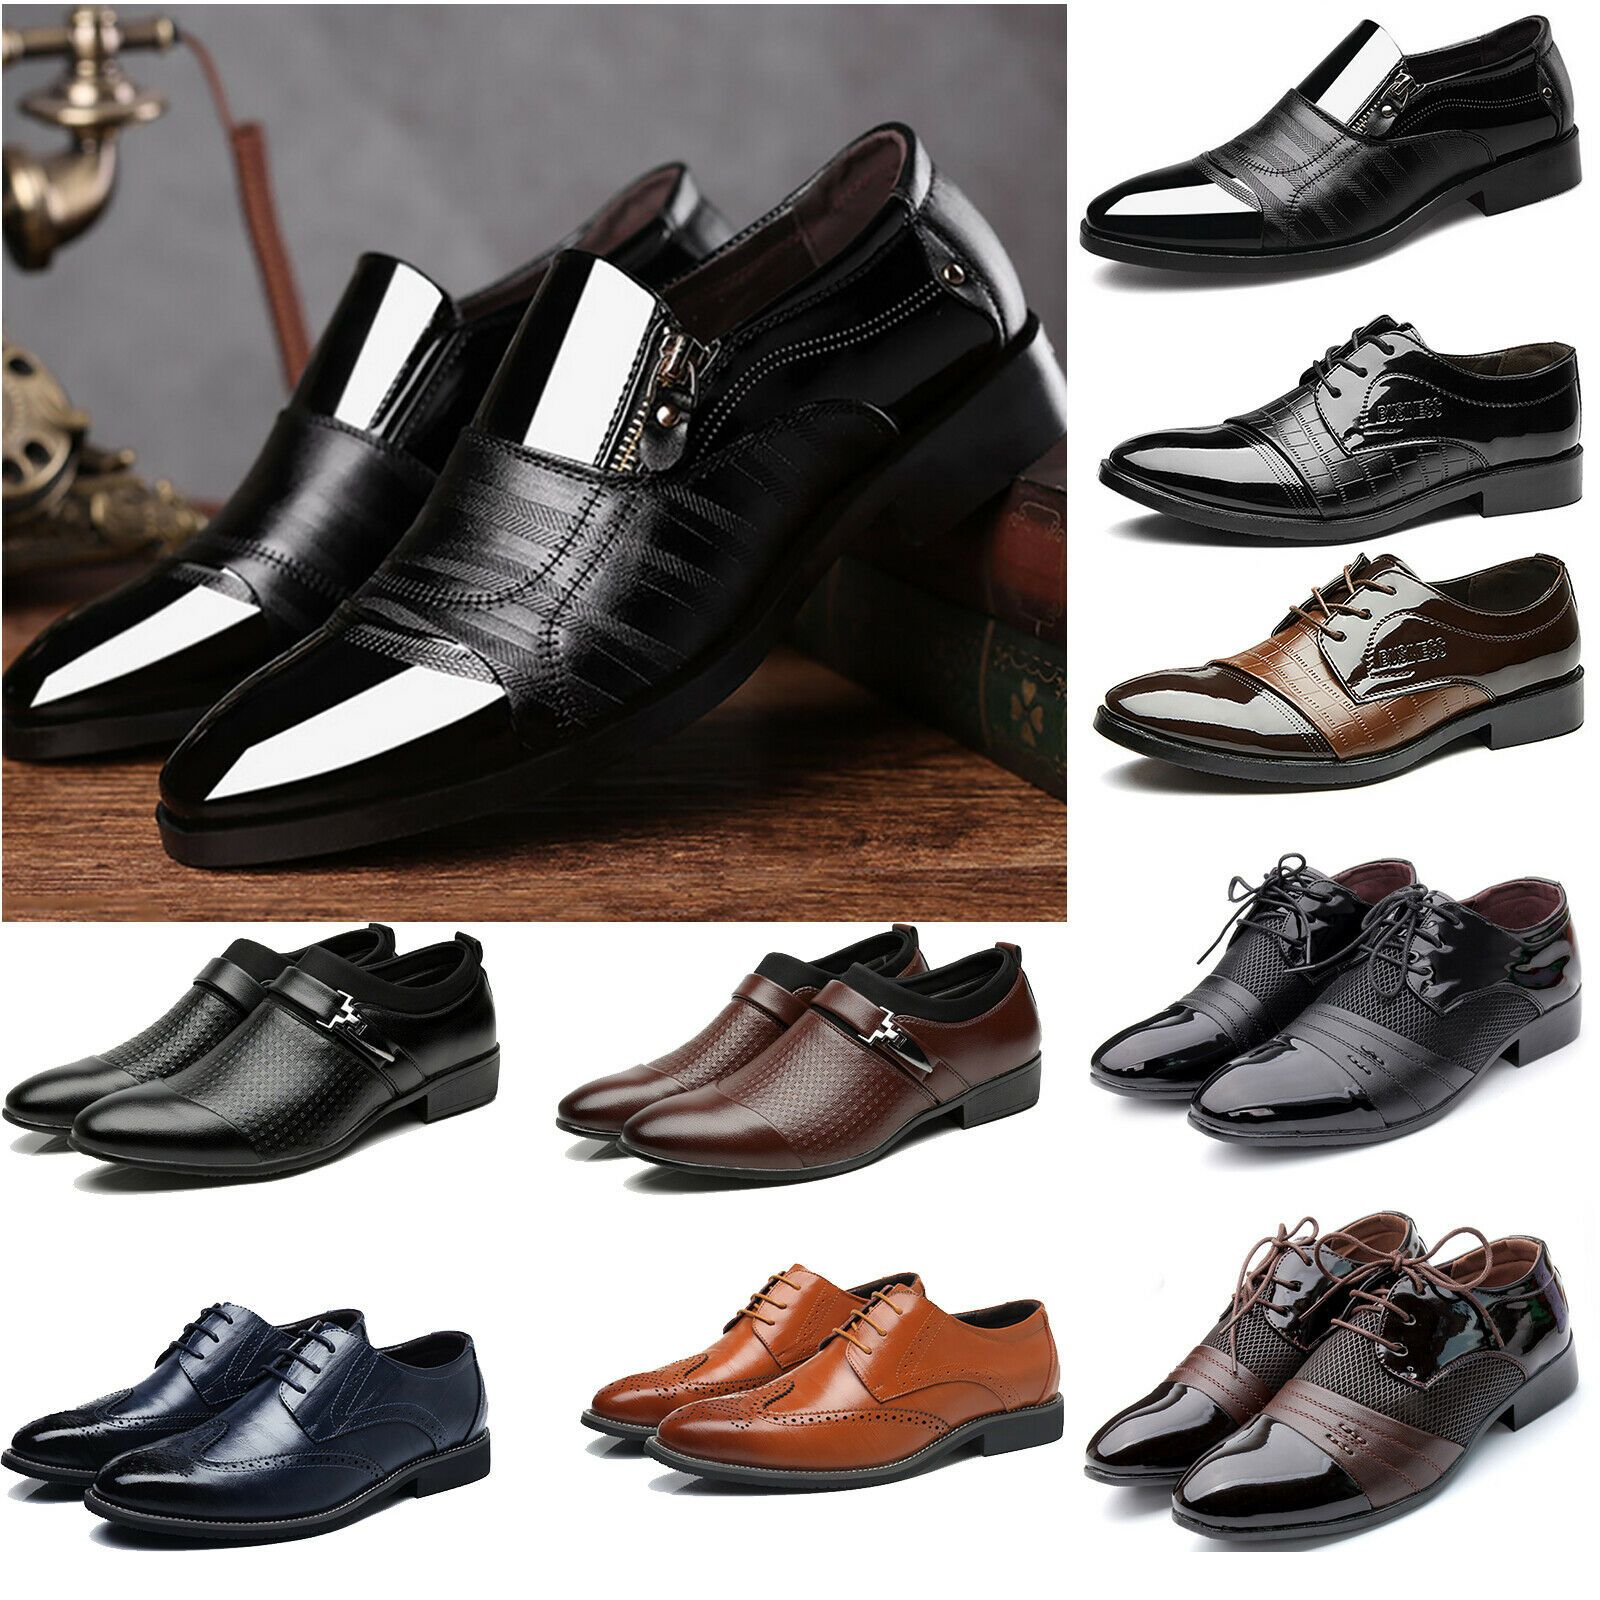 Men Dress Tuxedo Formal Oxfords Shoes Suit Lace up Brogue Wing Tip Wedding Party